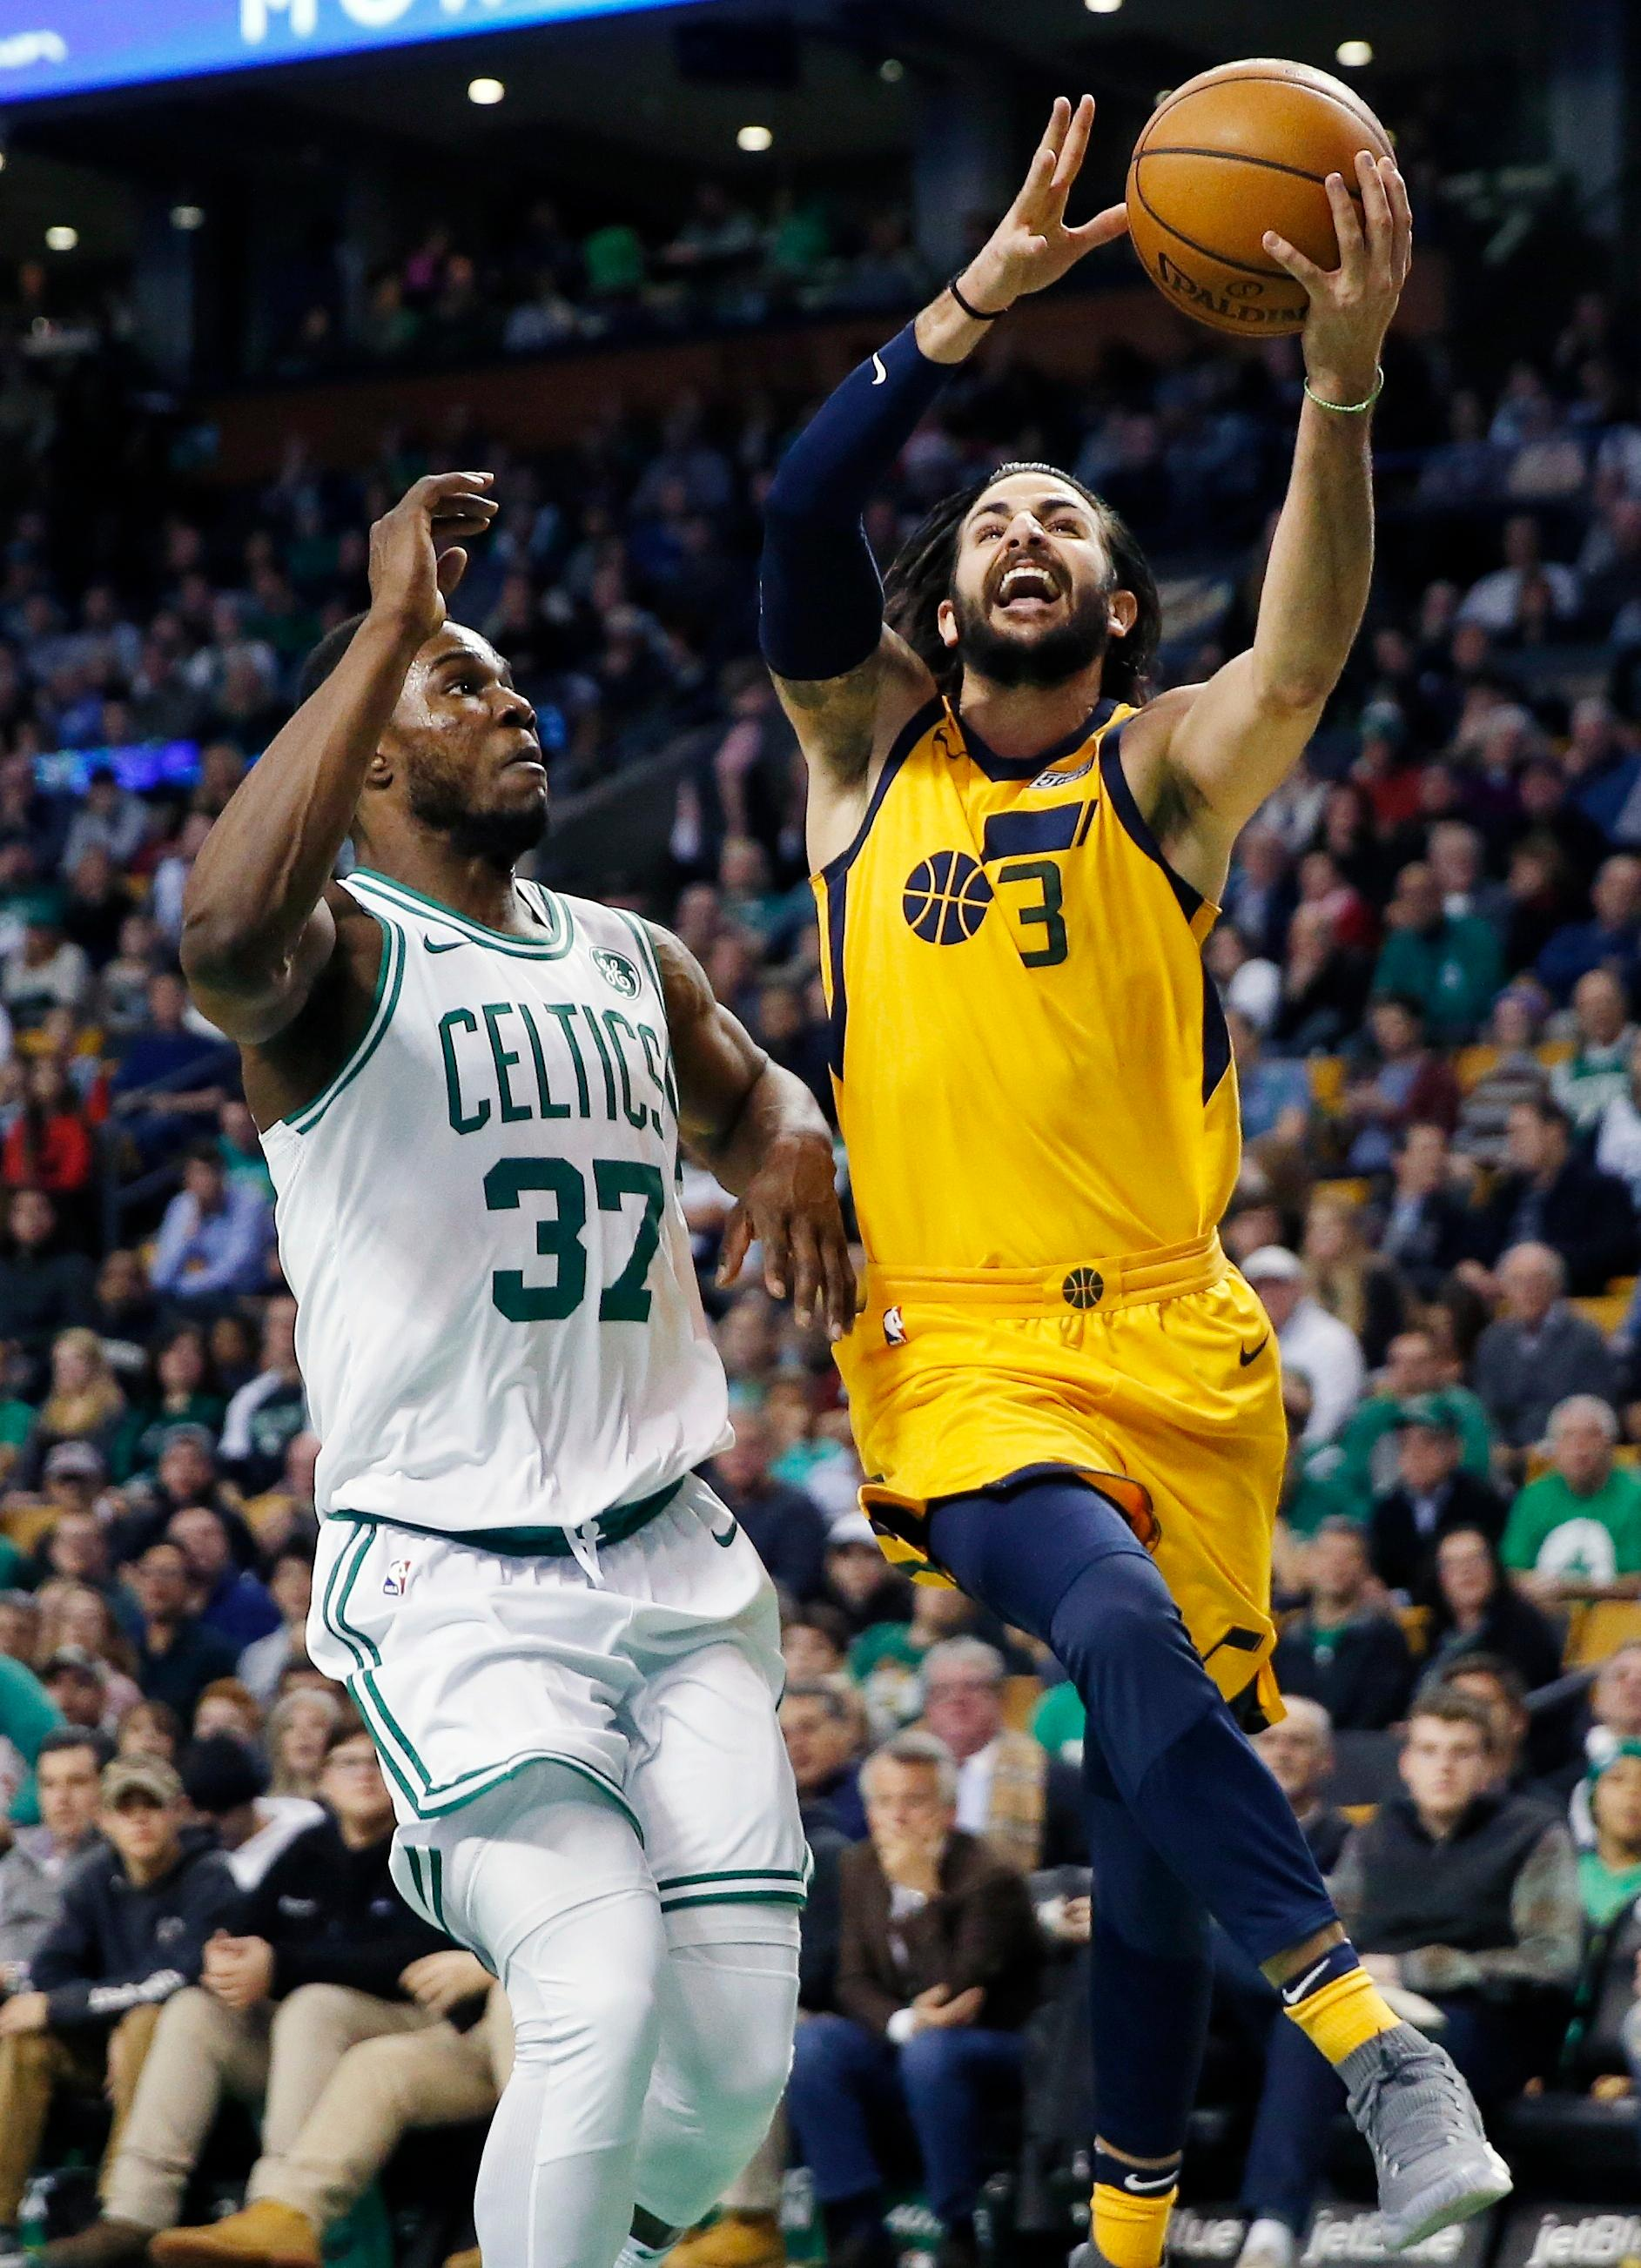 Utah Jazz's Ricky Rubio (3) goes up to shoot against Boston Celtics' Semi Ojeleye (37) during the first quarter of an NBA basketball game in Boston, Friday, Dec. 15, 2017. (AP Photo/Michael Dwyer)